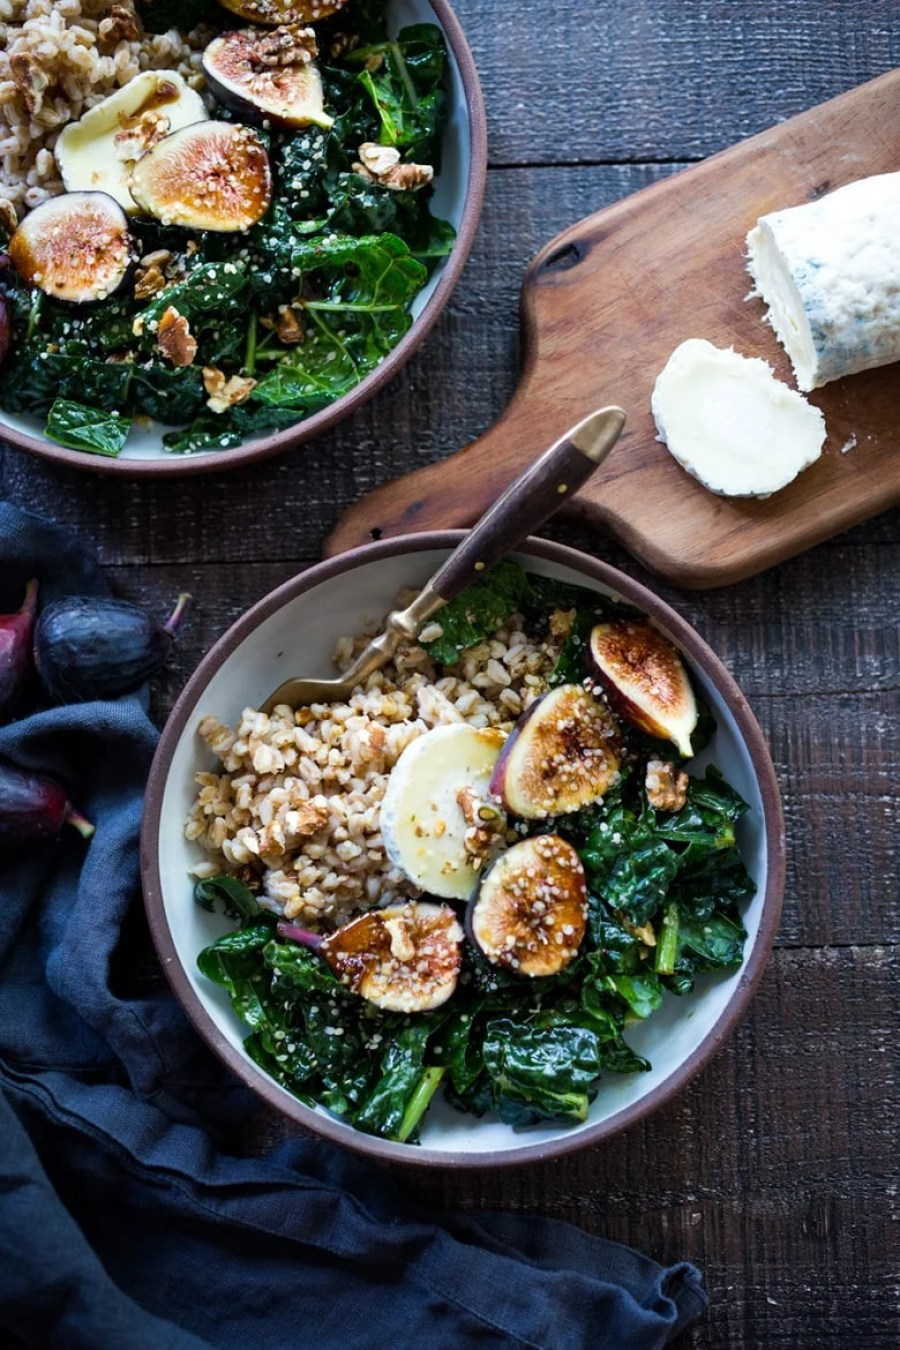 Farro Bowl with Figs, Kale and Goat Cheese - a simple healthy meal, perfect for mid week lunches. Quick and Easy!   www.feastingathome.com